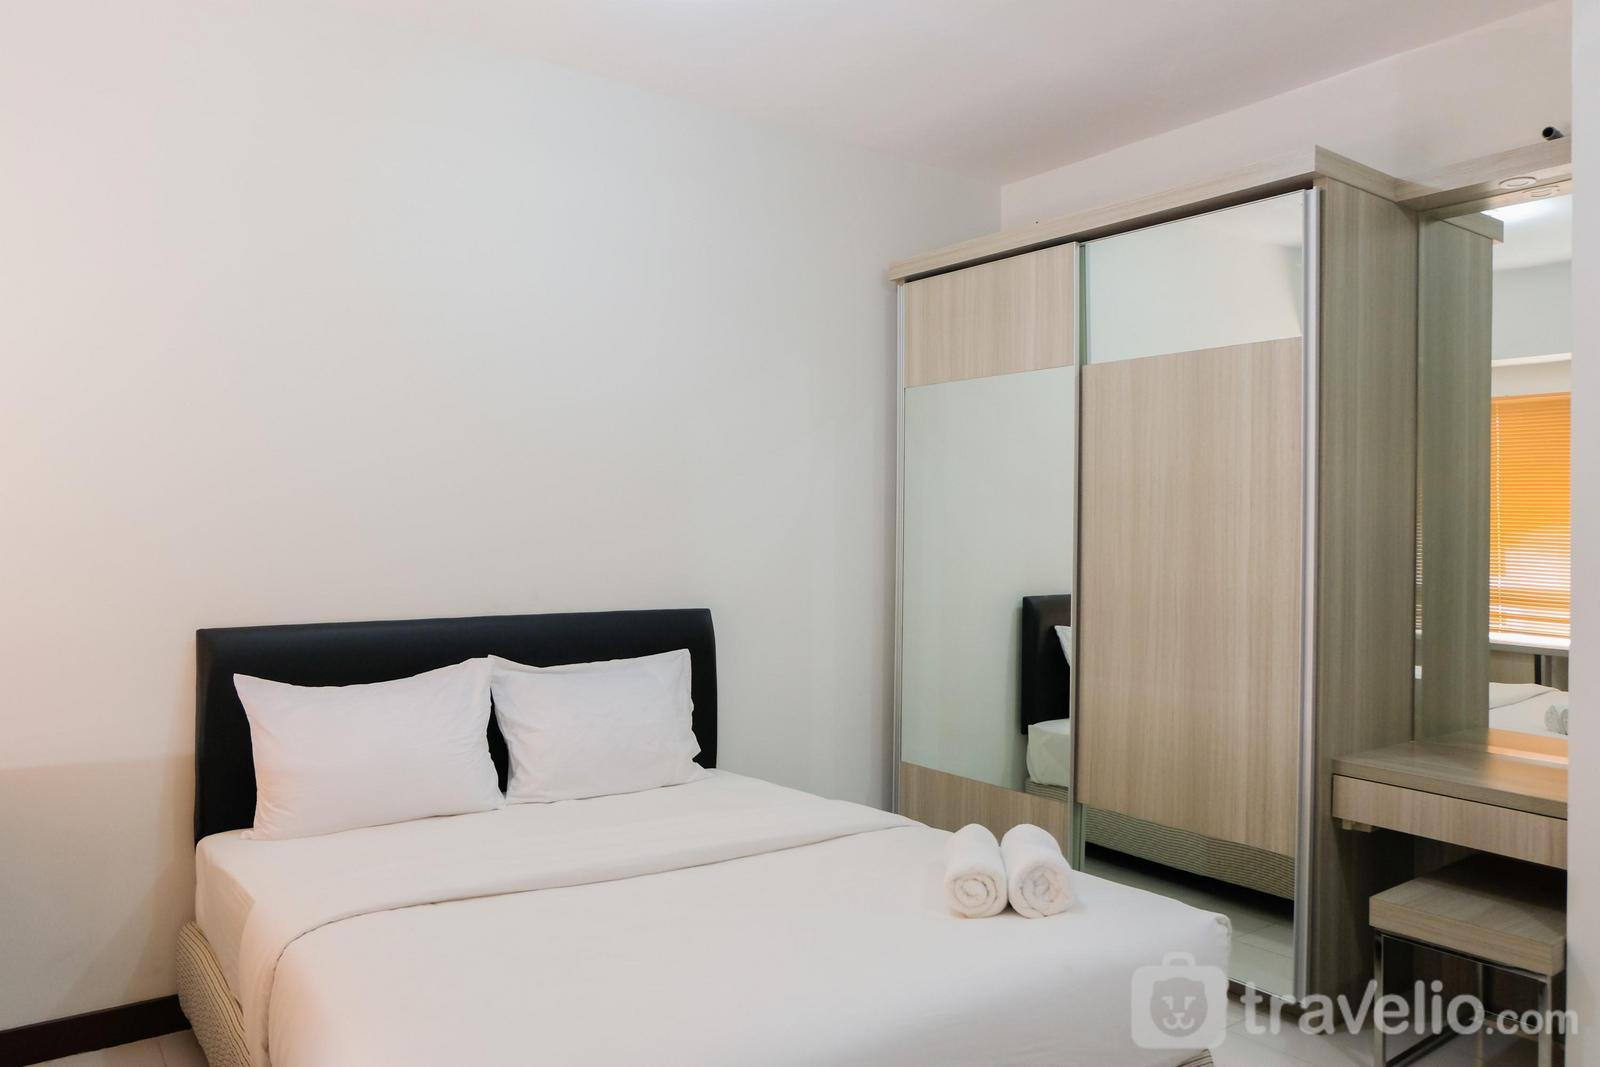 Scientia Residence - Brand New Cozy Studio at Scientia Apartment By Travelio